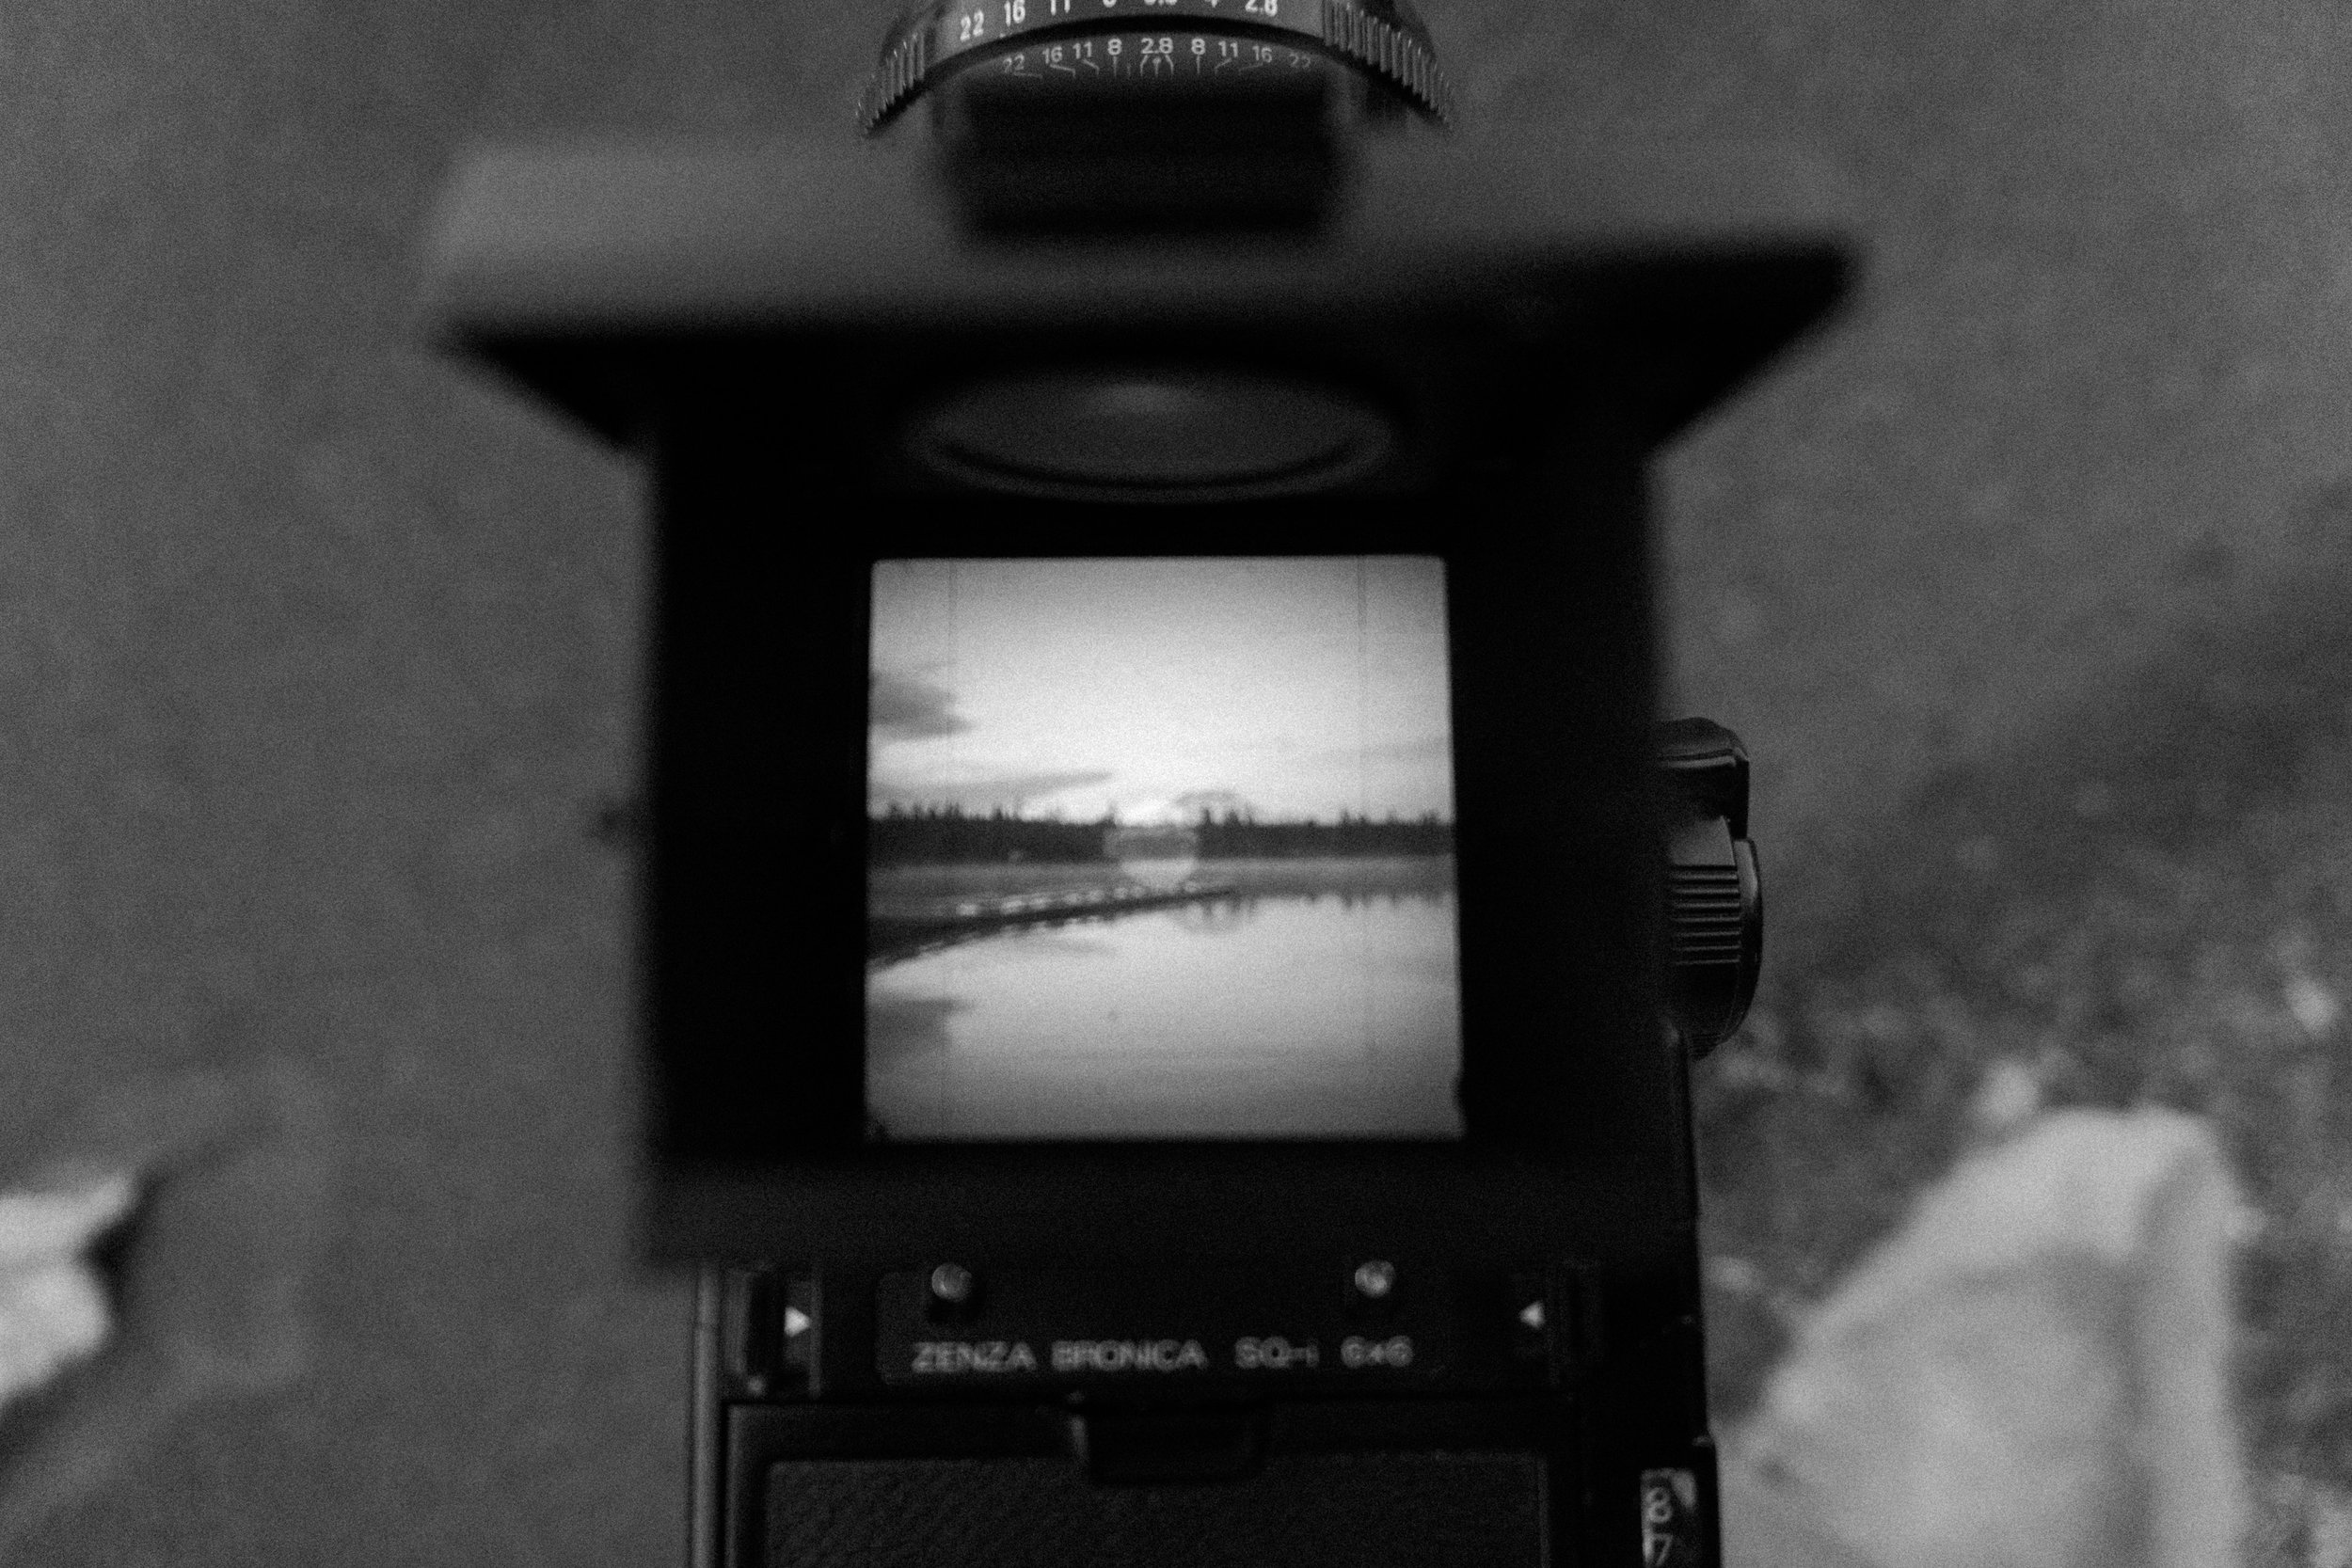 Bronica in action